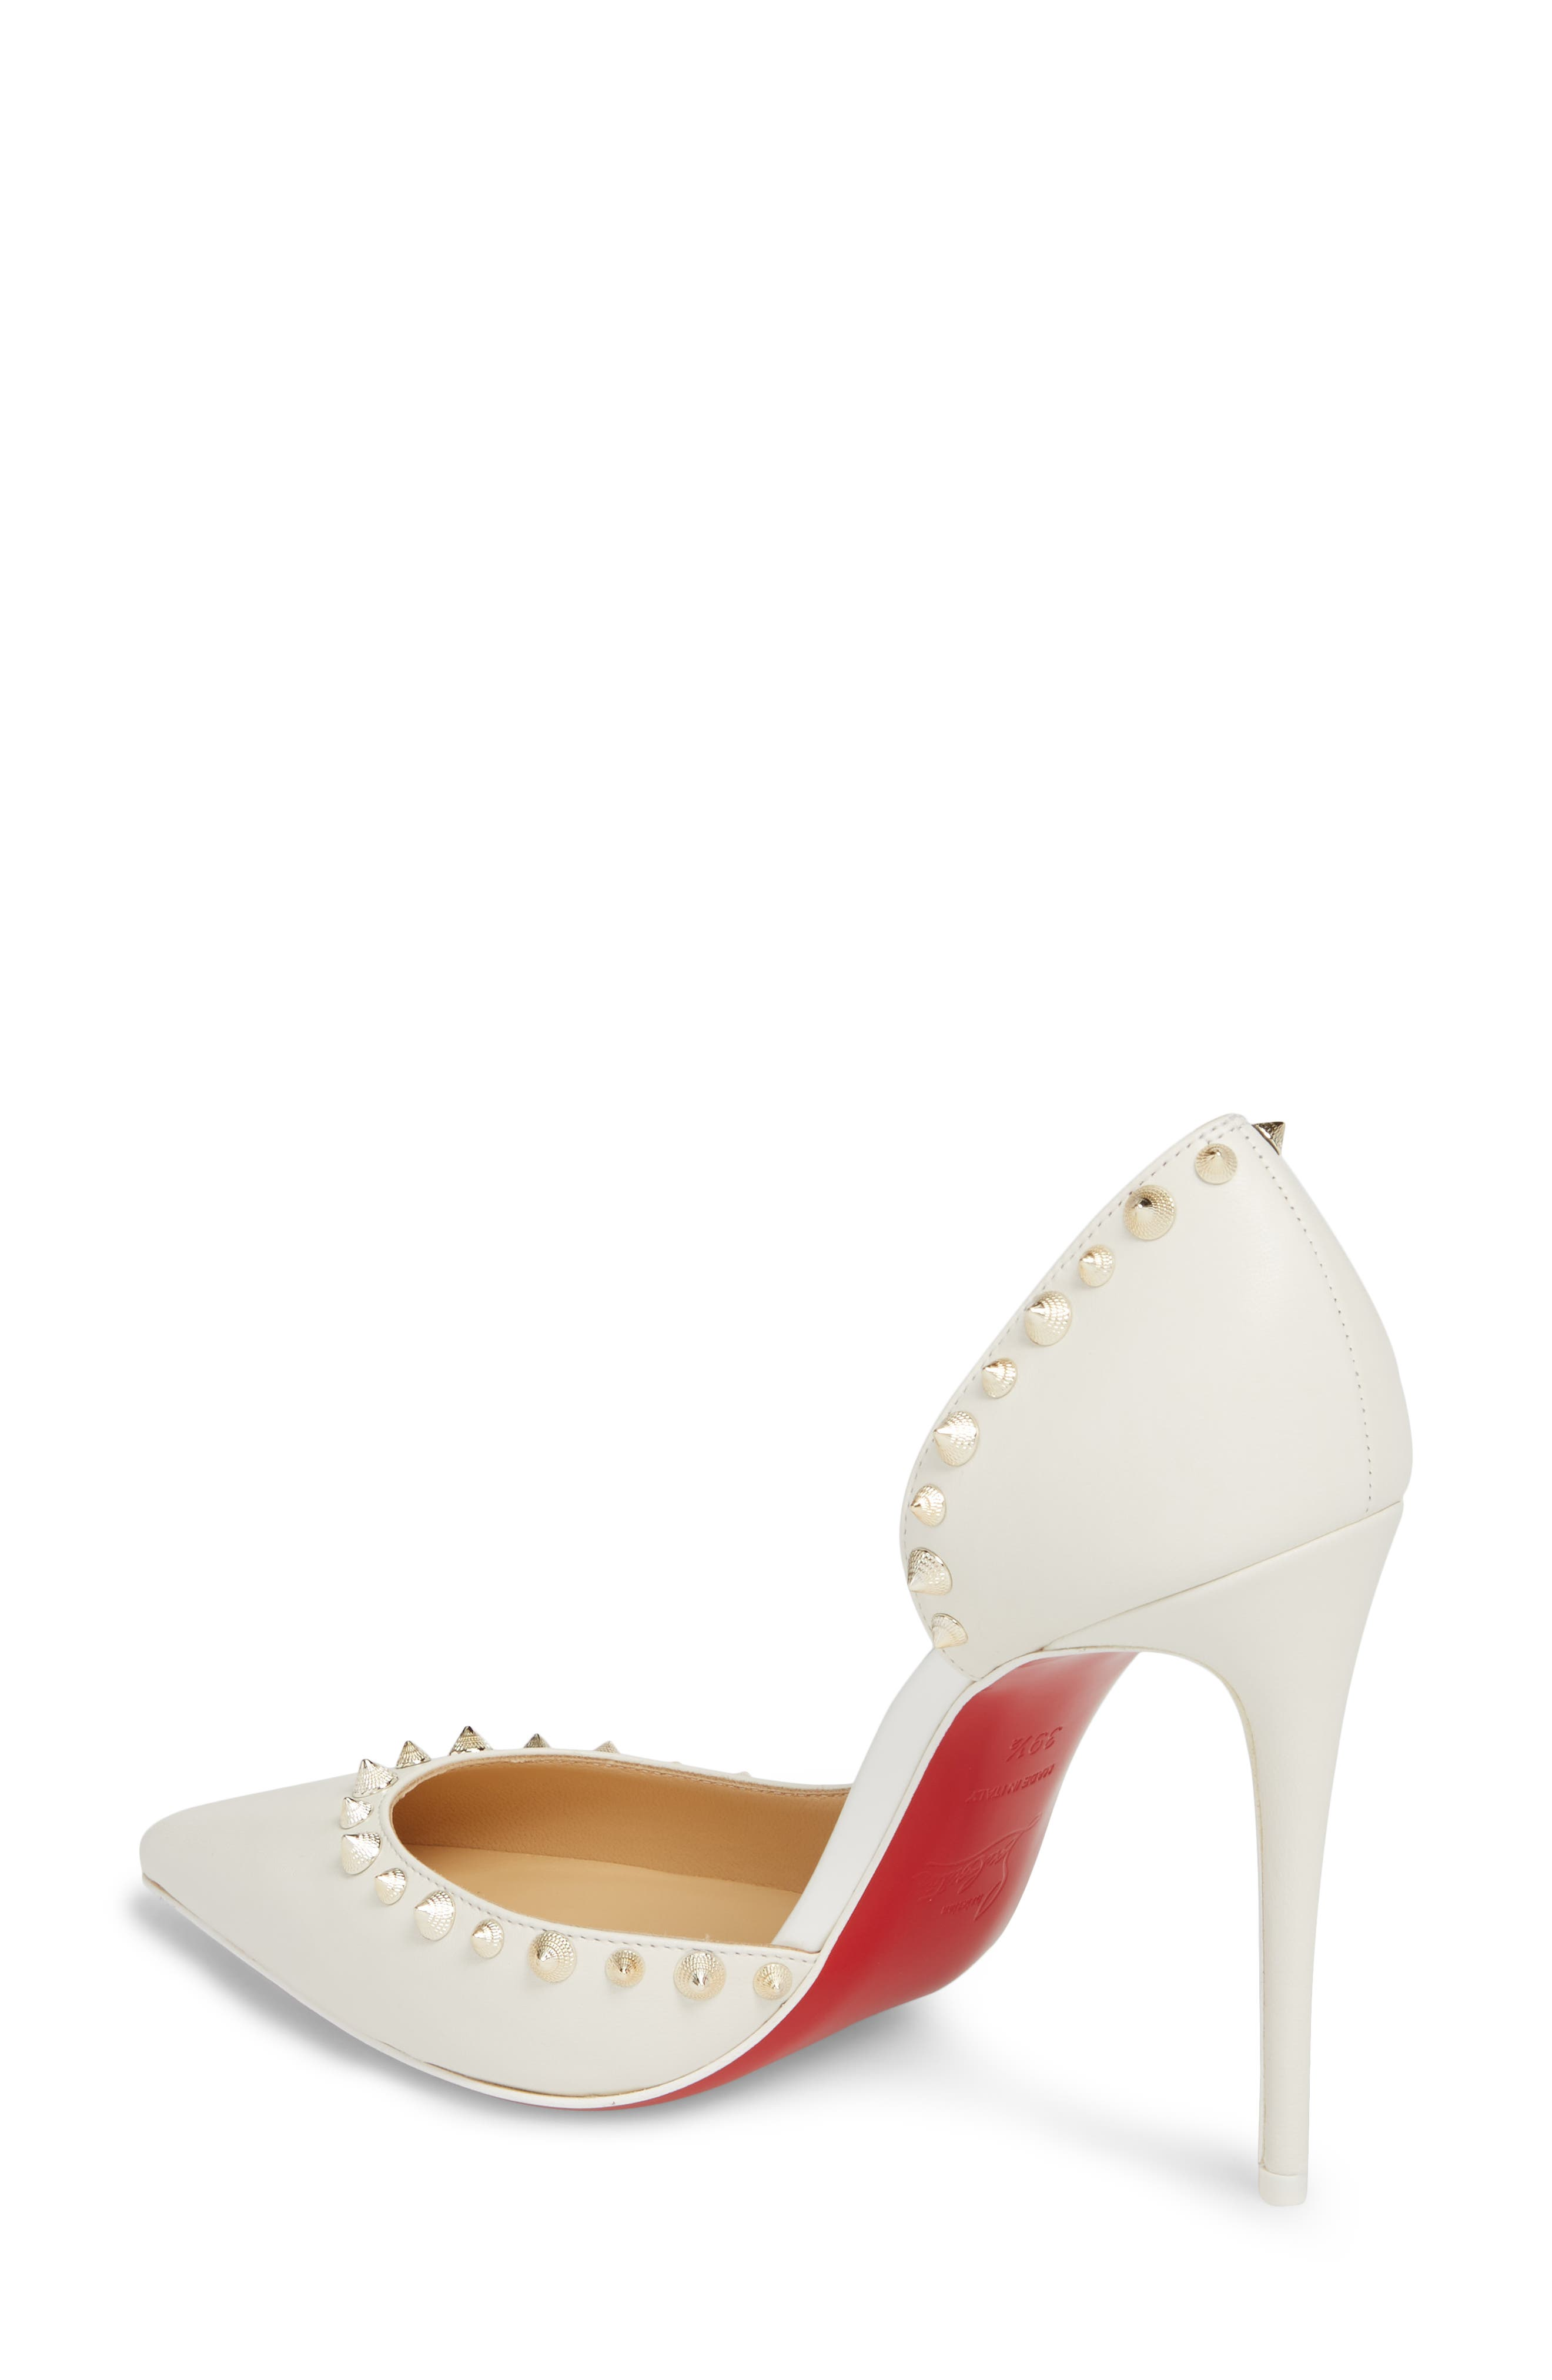 Irishell Spiked Half d'Orsay Pump,                             Alternate thumbnail 2, color,                             LATTE/ WHITE GOLD